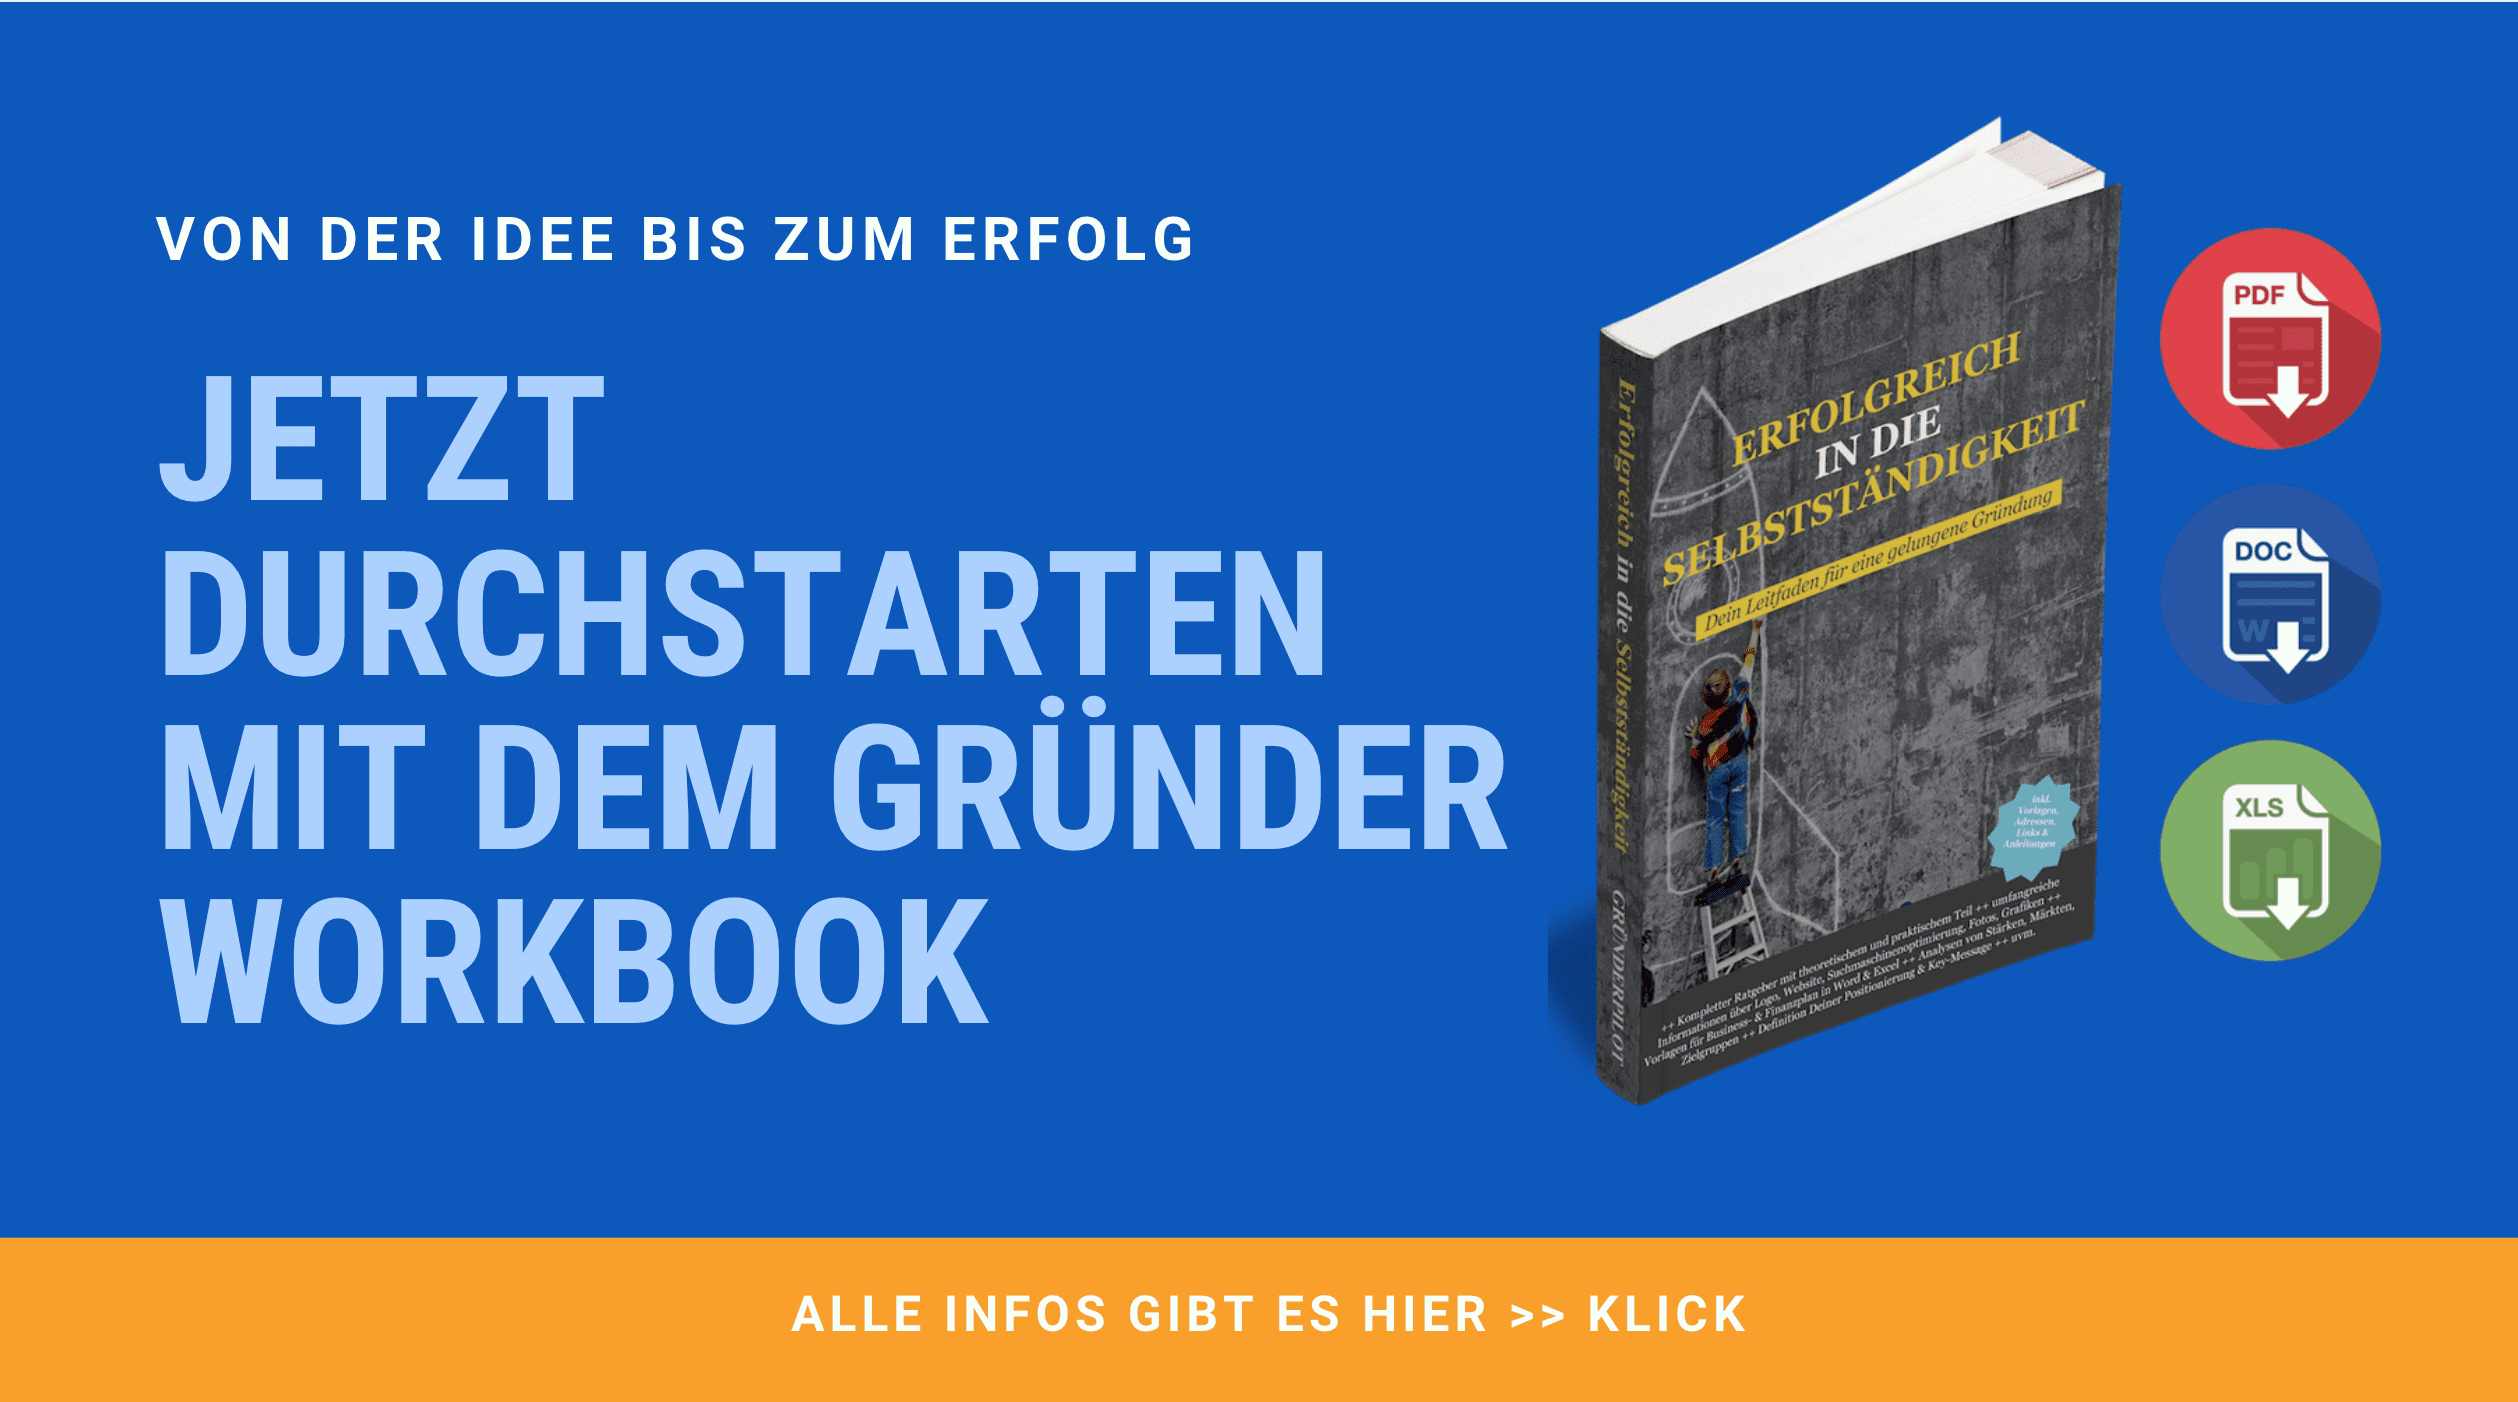 Existenzgruender Workbook1 - Instagram Marketing